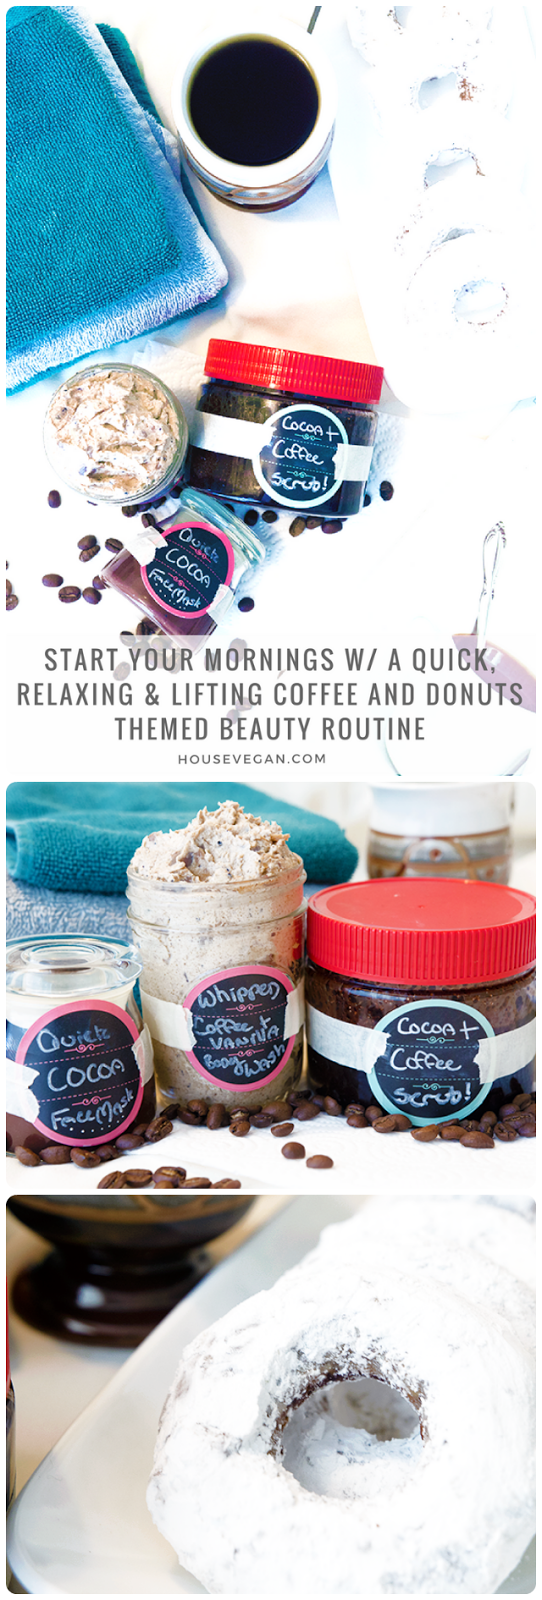 spa mornings, coffee spa, DIY coffee spa, homemade coffee spa, DIY whipped coffee body wash, vegan whipped body wash, DIY whipped body wash, aloe sugar scrub, DIY coffee aloe sugar scrub, homemade coffee aloe scrub,, homemade aloe sugar scrub, cocoa face mask, DIY donut face mask, chocolate DIY face mask, vegan chocolate face mask, spa for mornings, homemade weekday morning spa, at home spa for weekdays, at home spa for busy mornings